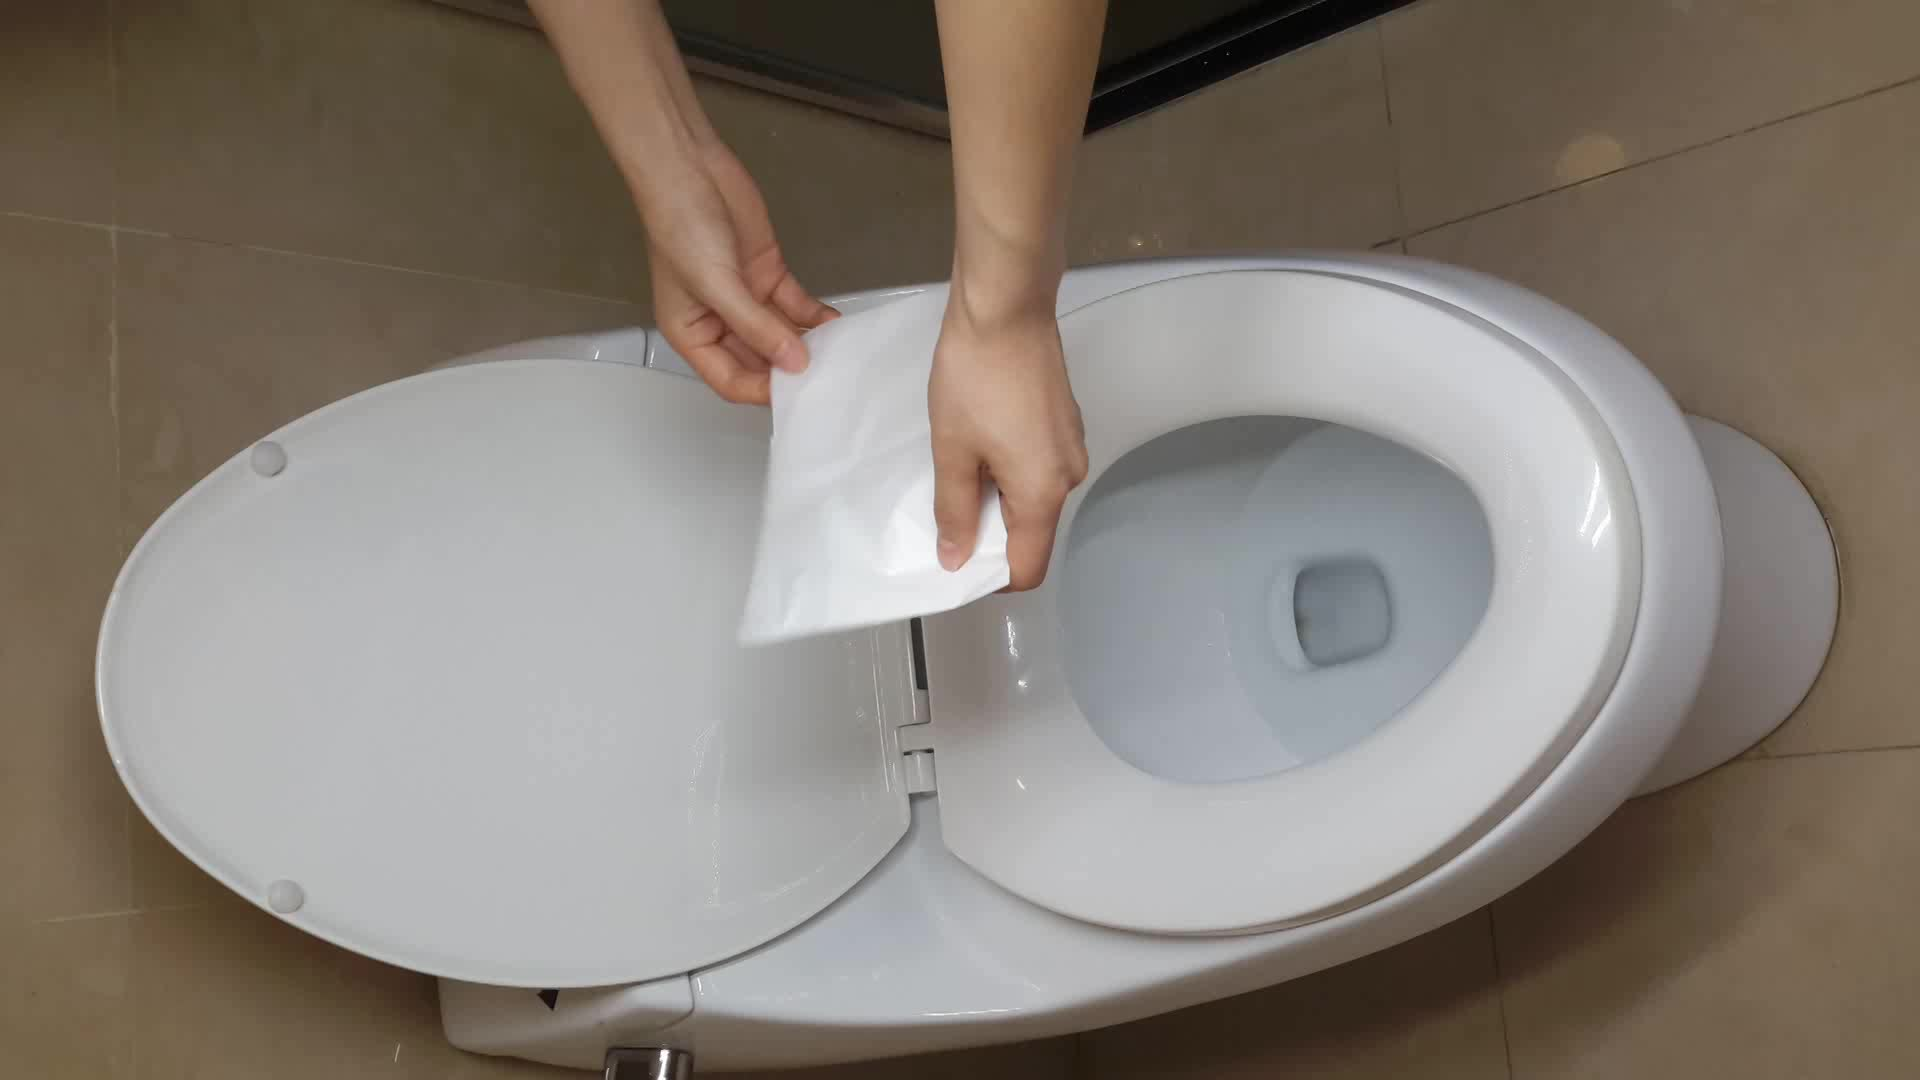 toilet paper cover hotel toilets use 1 4 fold flushable paper toilet seat 2855